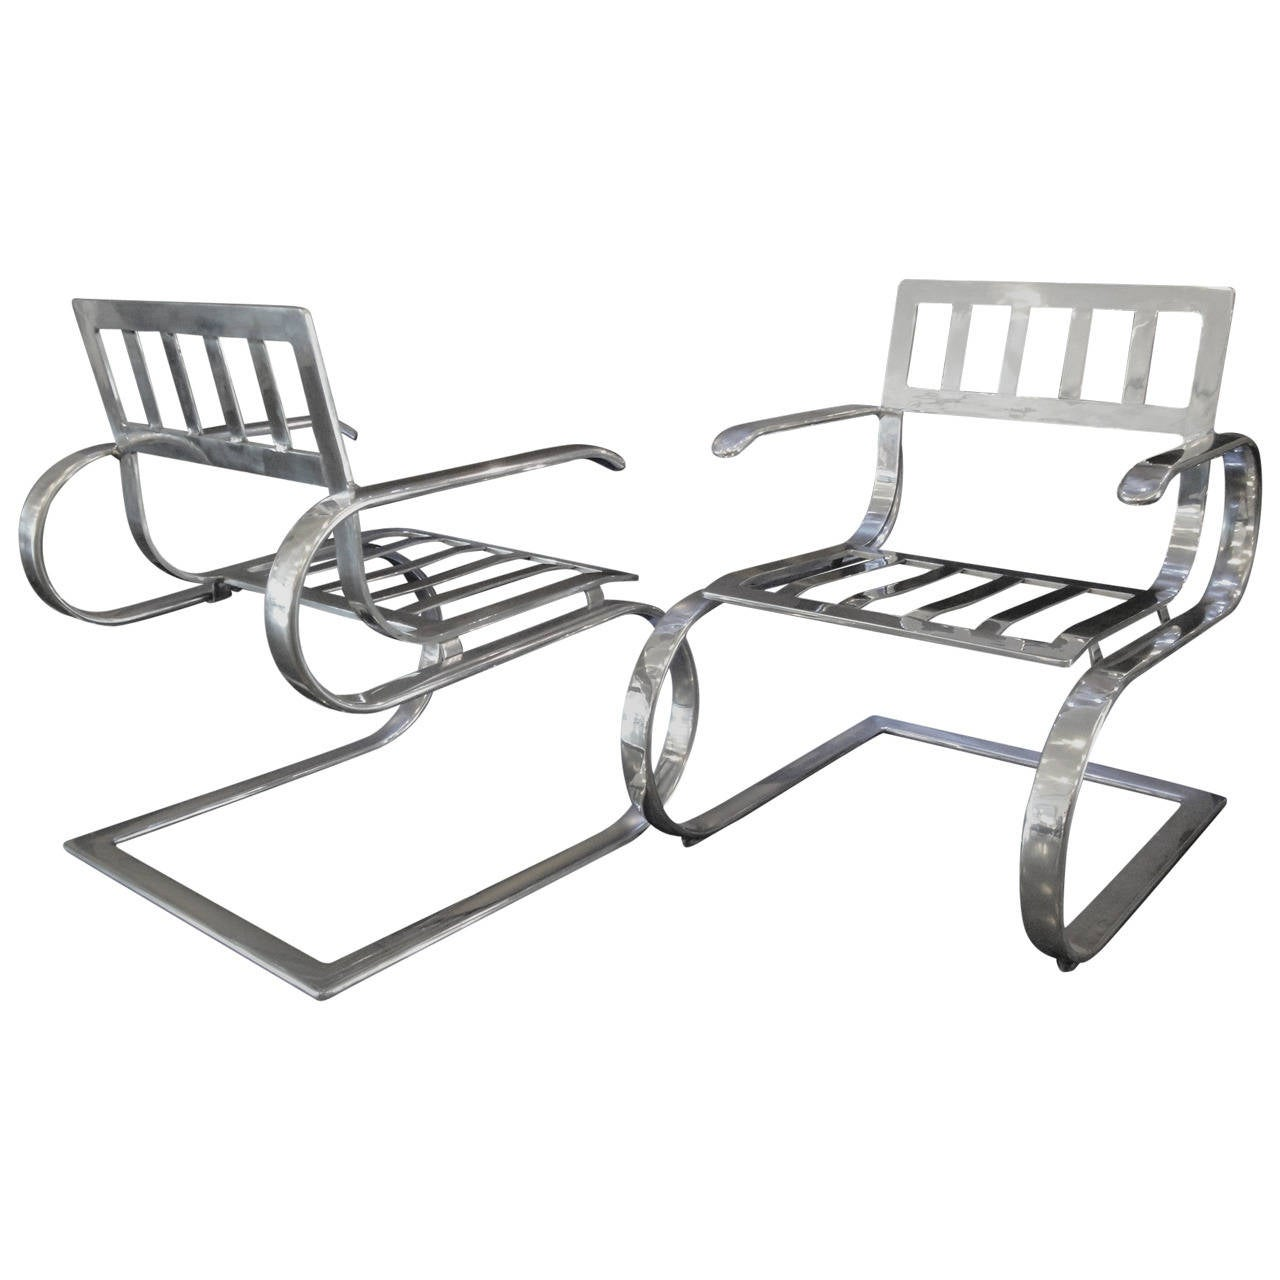 Pair of Aluminum Lounge Chairs and Ottoman